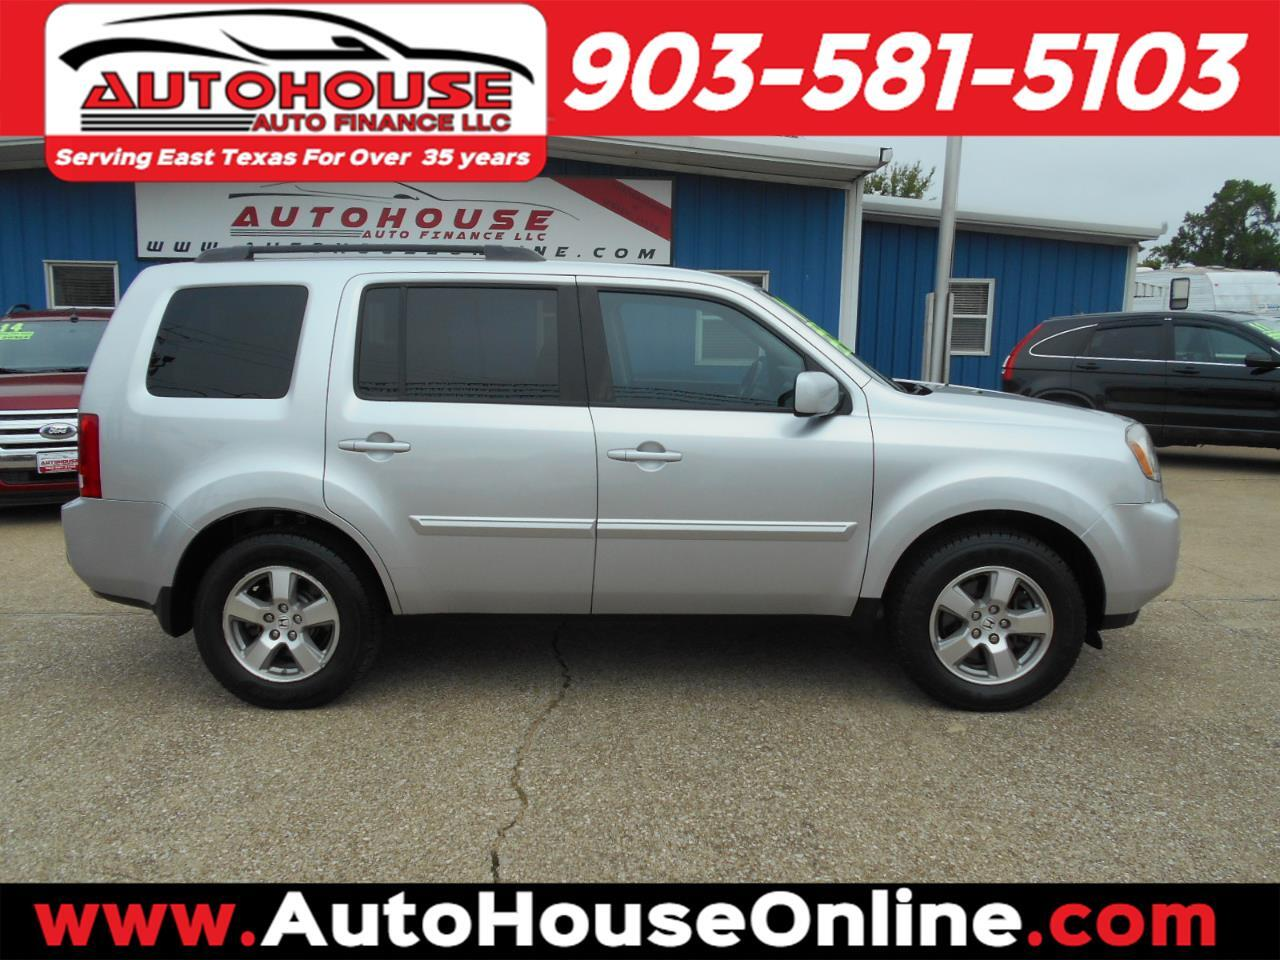 Honda Pilot EX-L 2WD 5-Spd AT with Navigation 2011